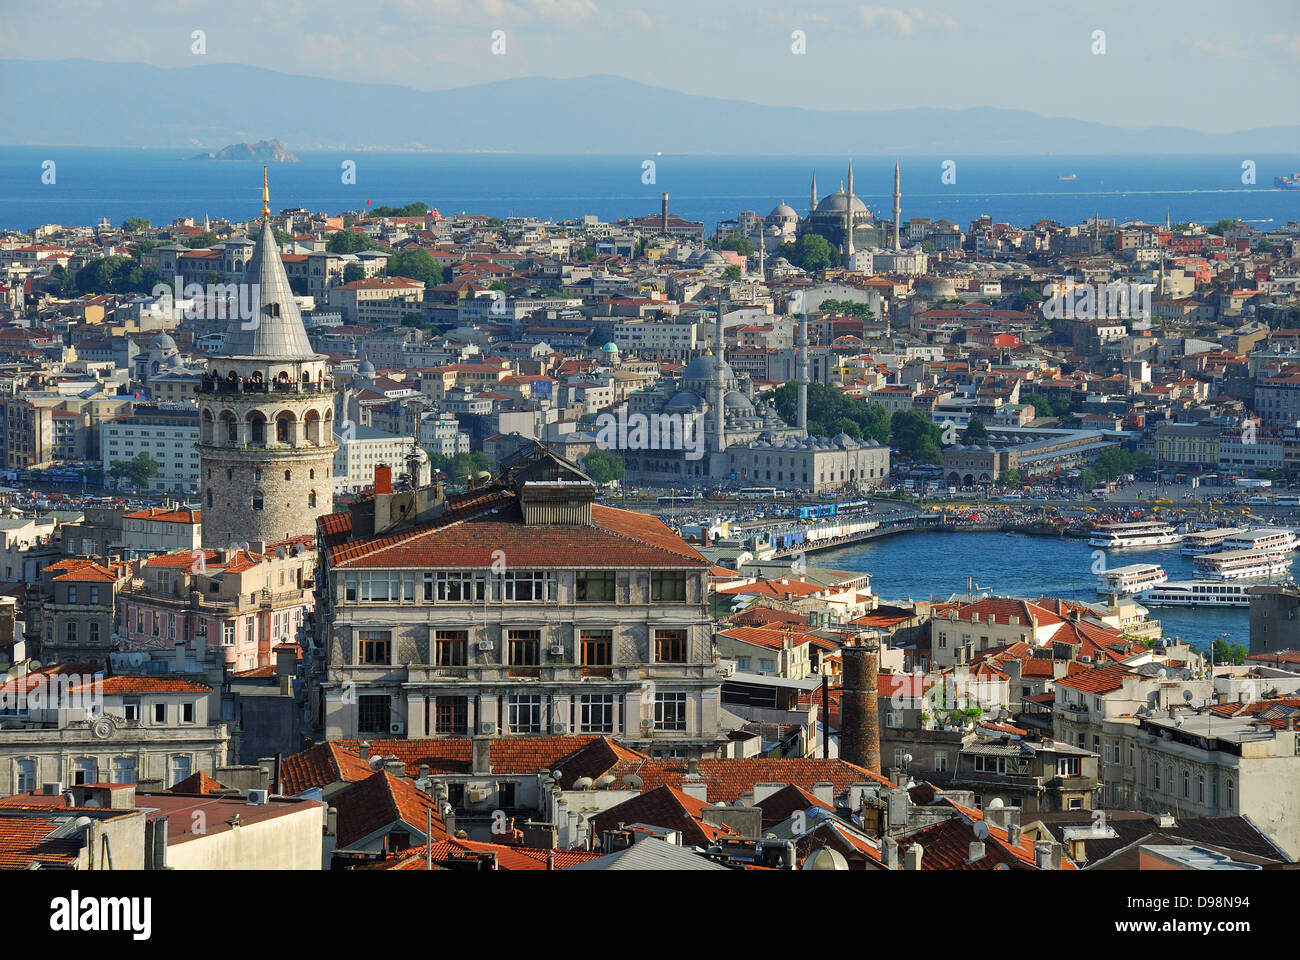 ISTANBUL, TURKEY. An elevated view over Beyoglu towards the historic bazaar district of the old city. - Stock Image